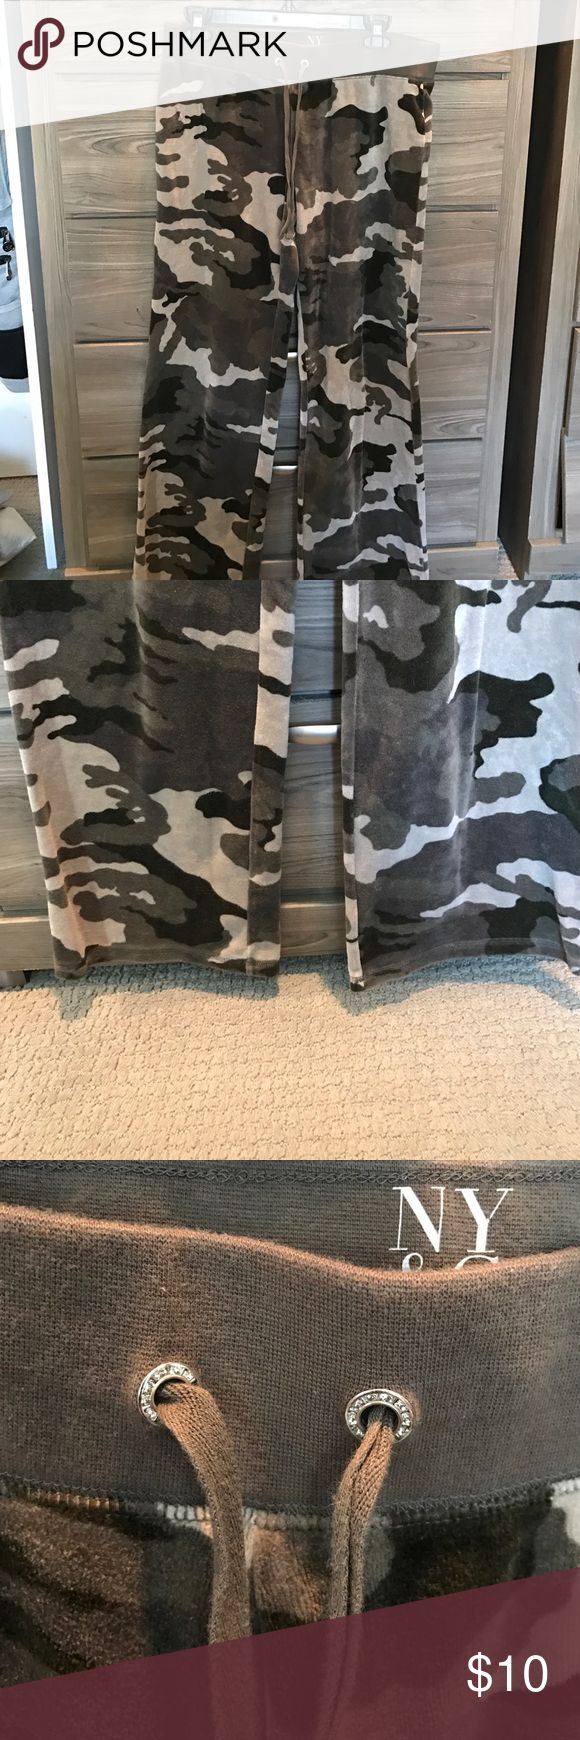 NY & Company olive green camo velvet sweatpants Athleta Cream skinny cord light weight pants. Wide leg itch rhinestone around draw strong. Lightly used. Great condition. Super soft velvet! New York & Company Pants Track Pants & Joggers